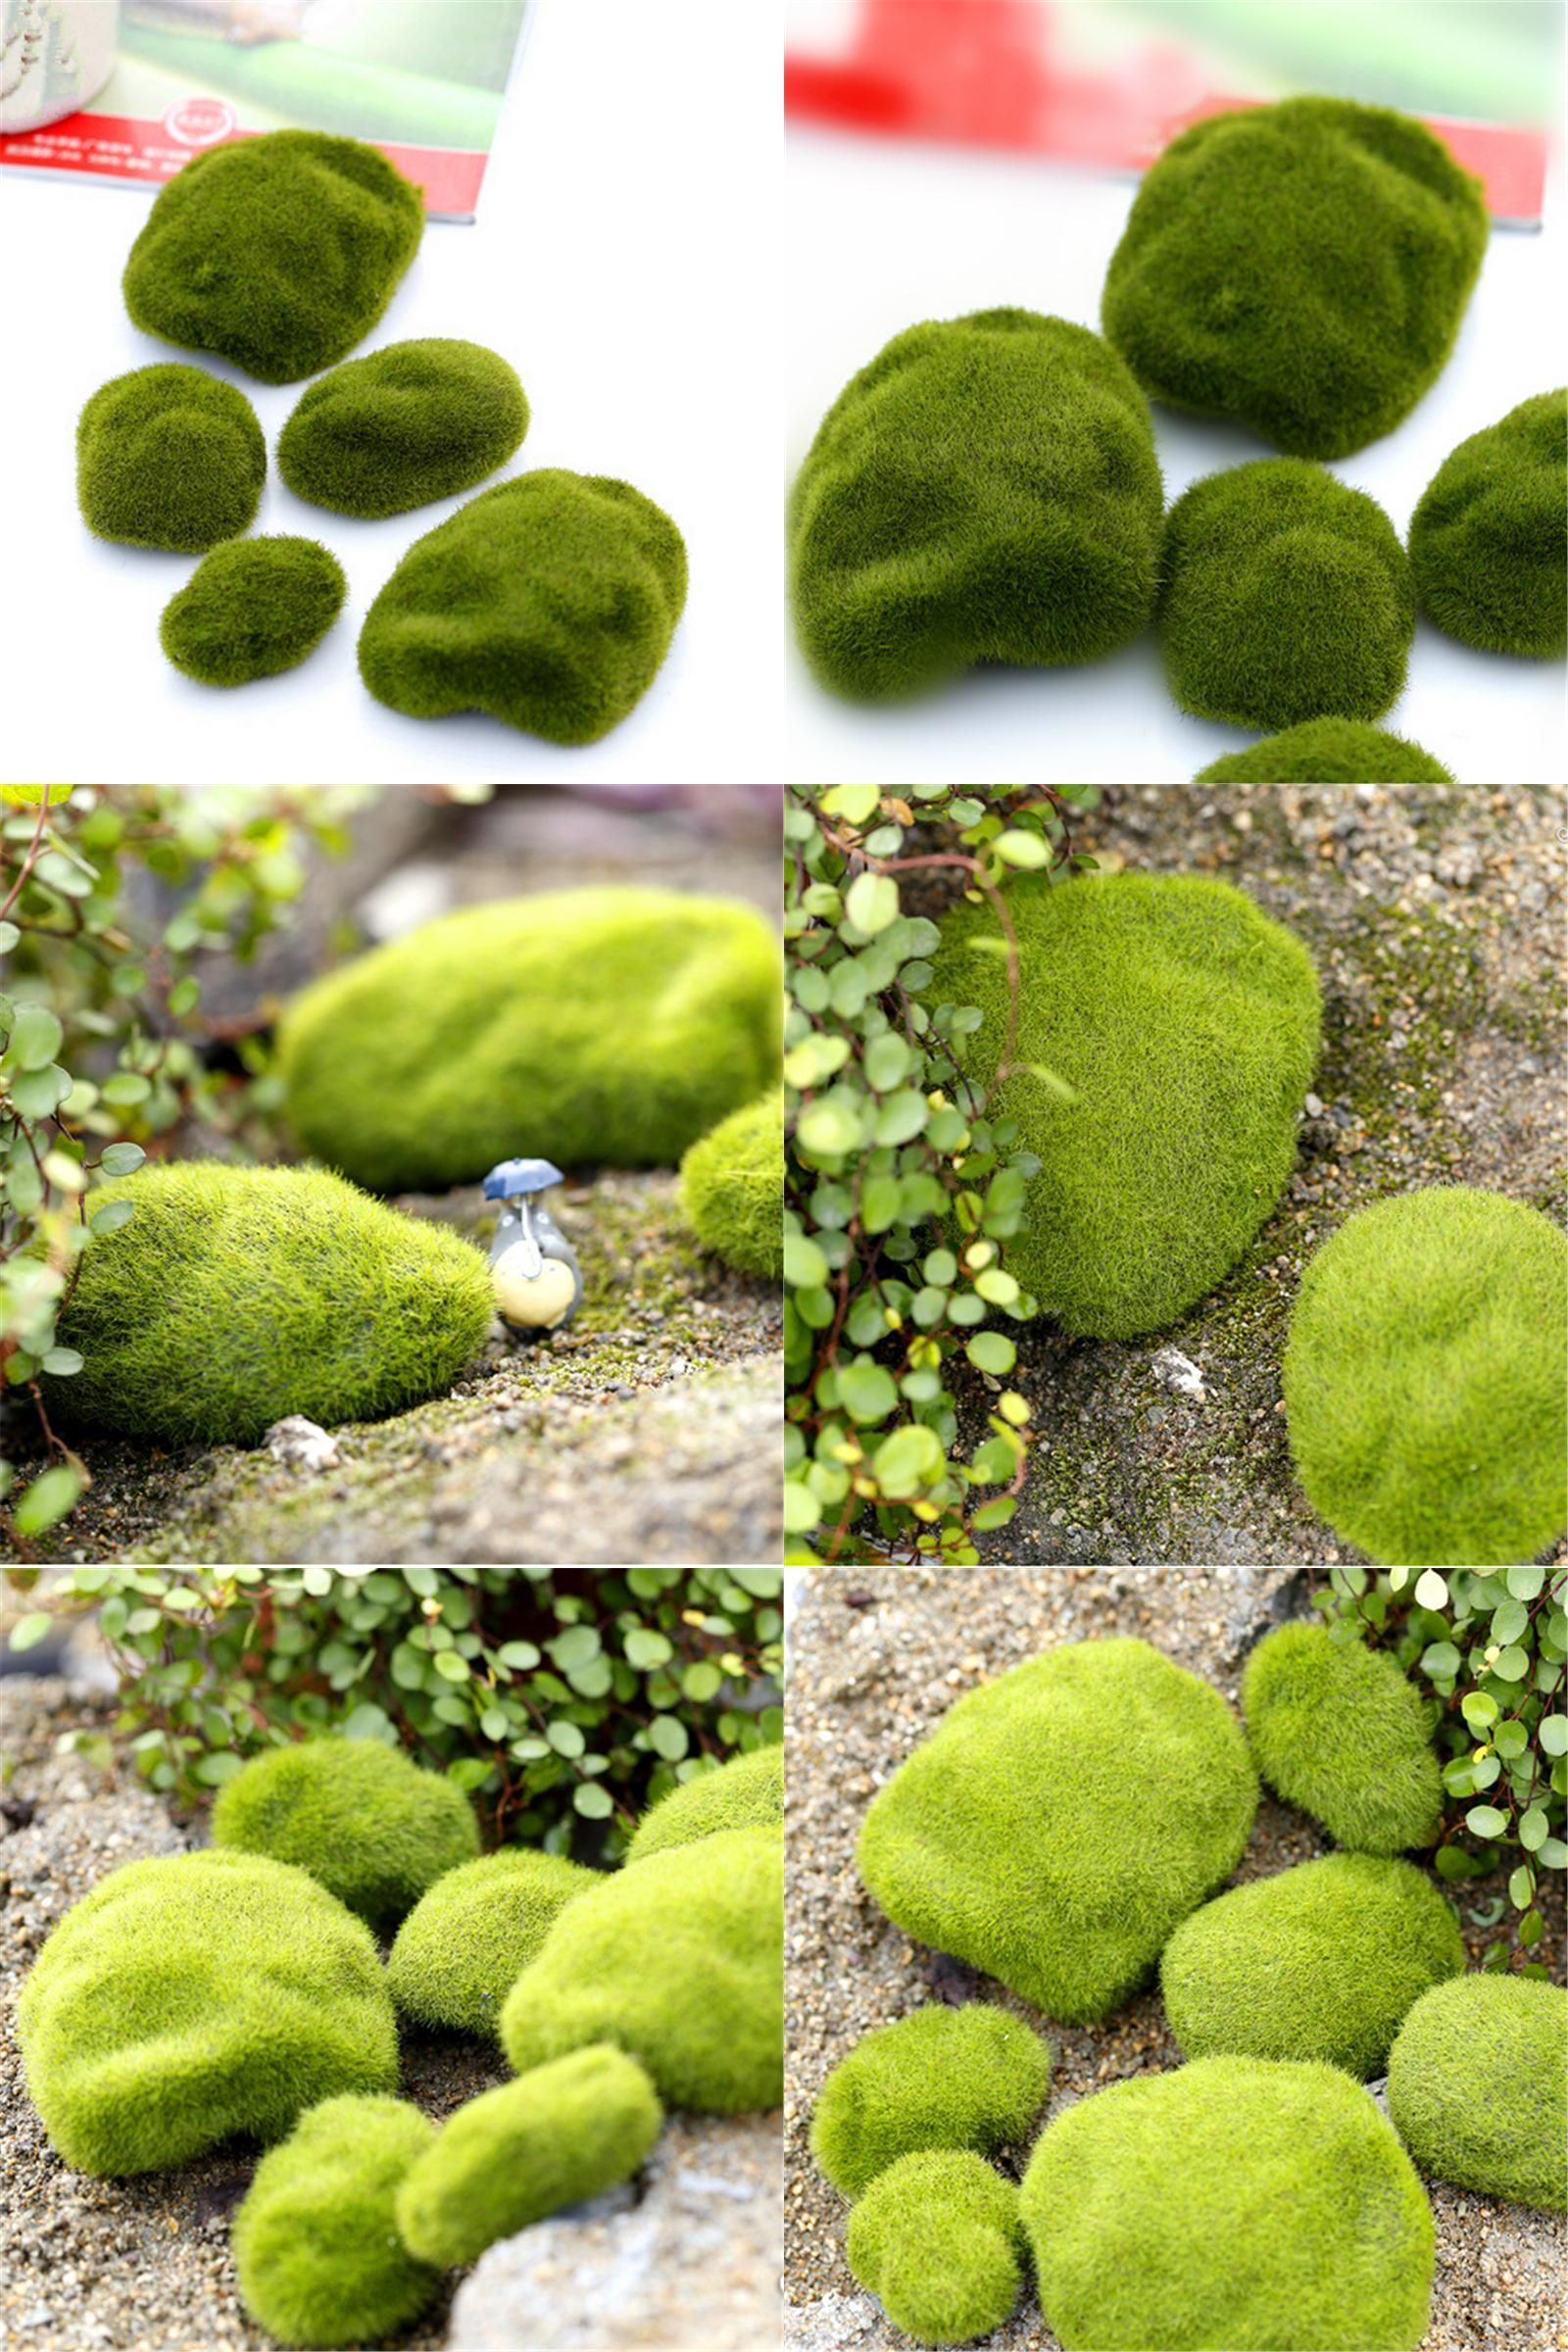 Garden decorations for sale -  Visit To Buy Hot Sale Miniature Fairy Garden Decorations Moss Craft Terrarium Figurines Artificial